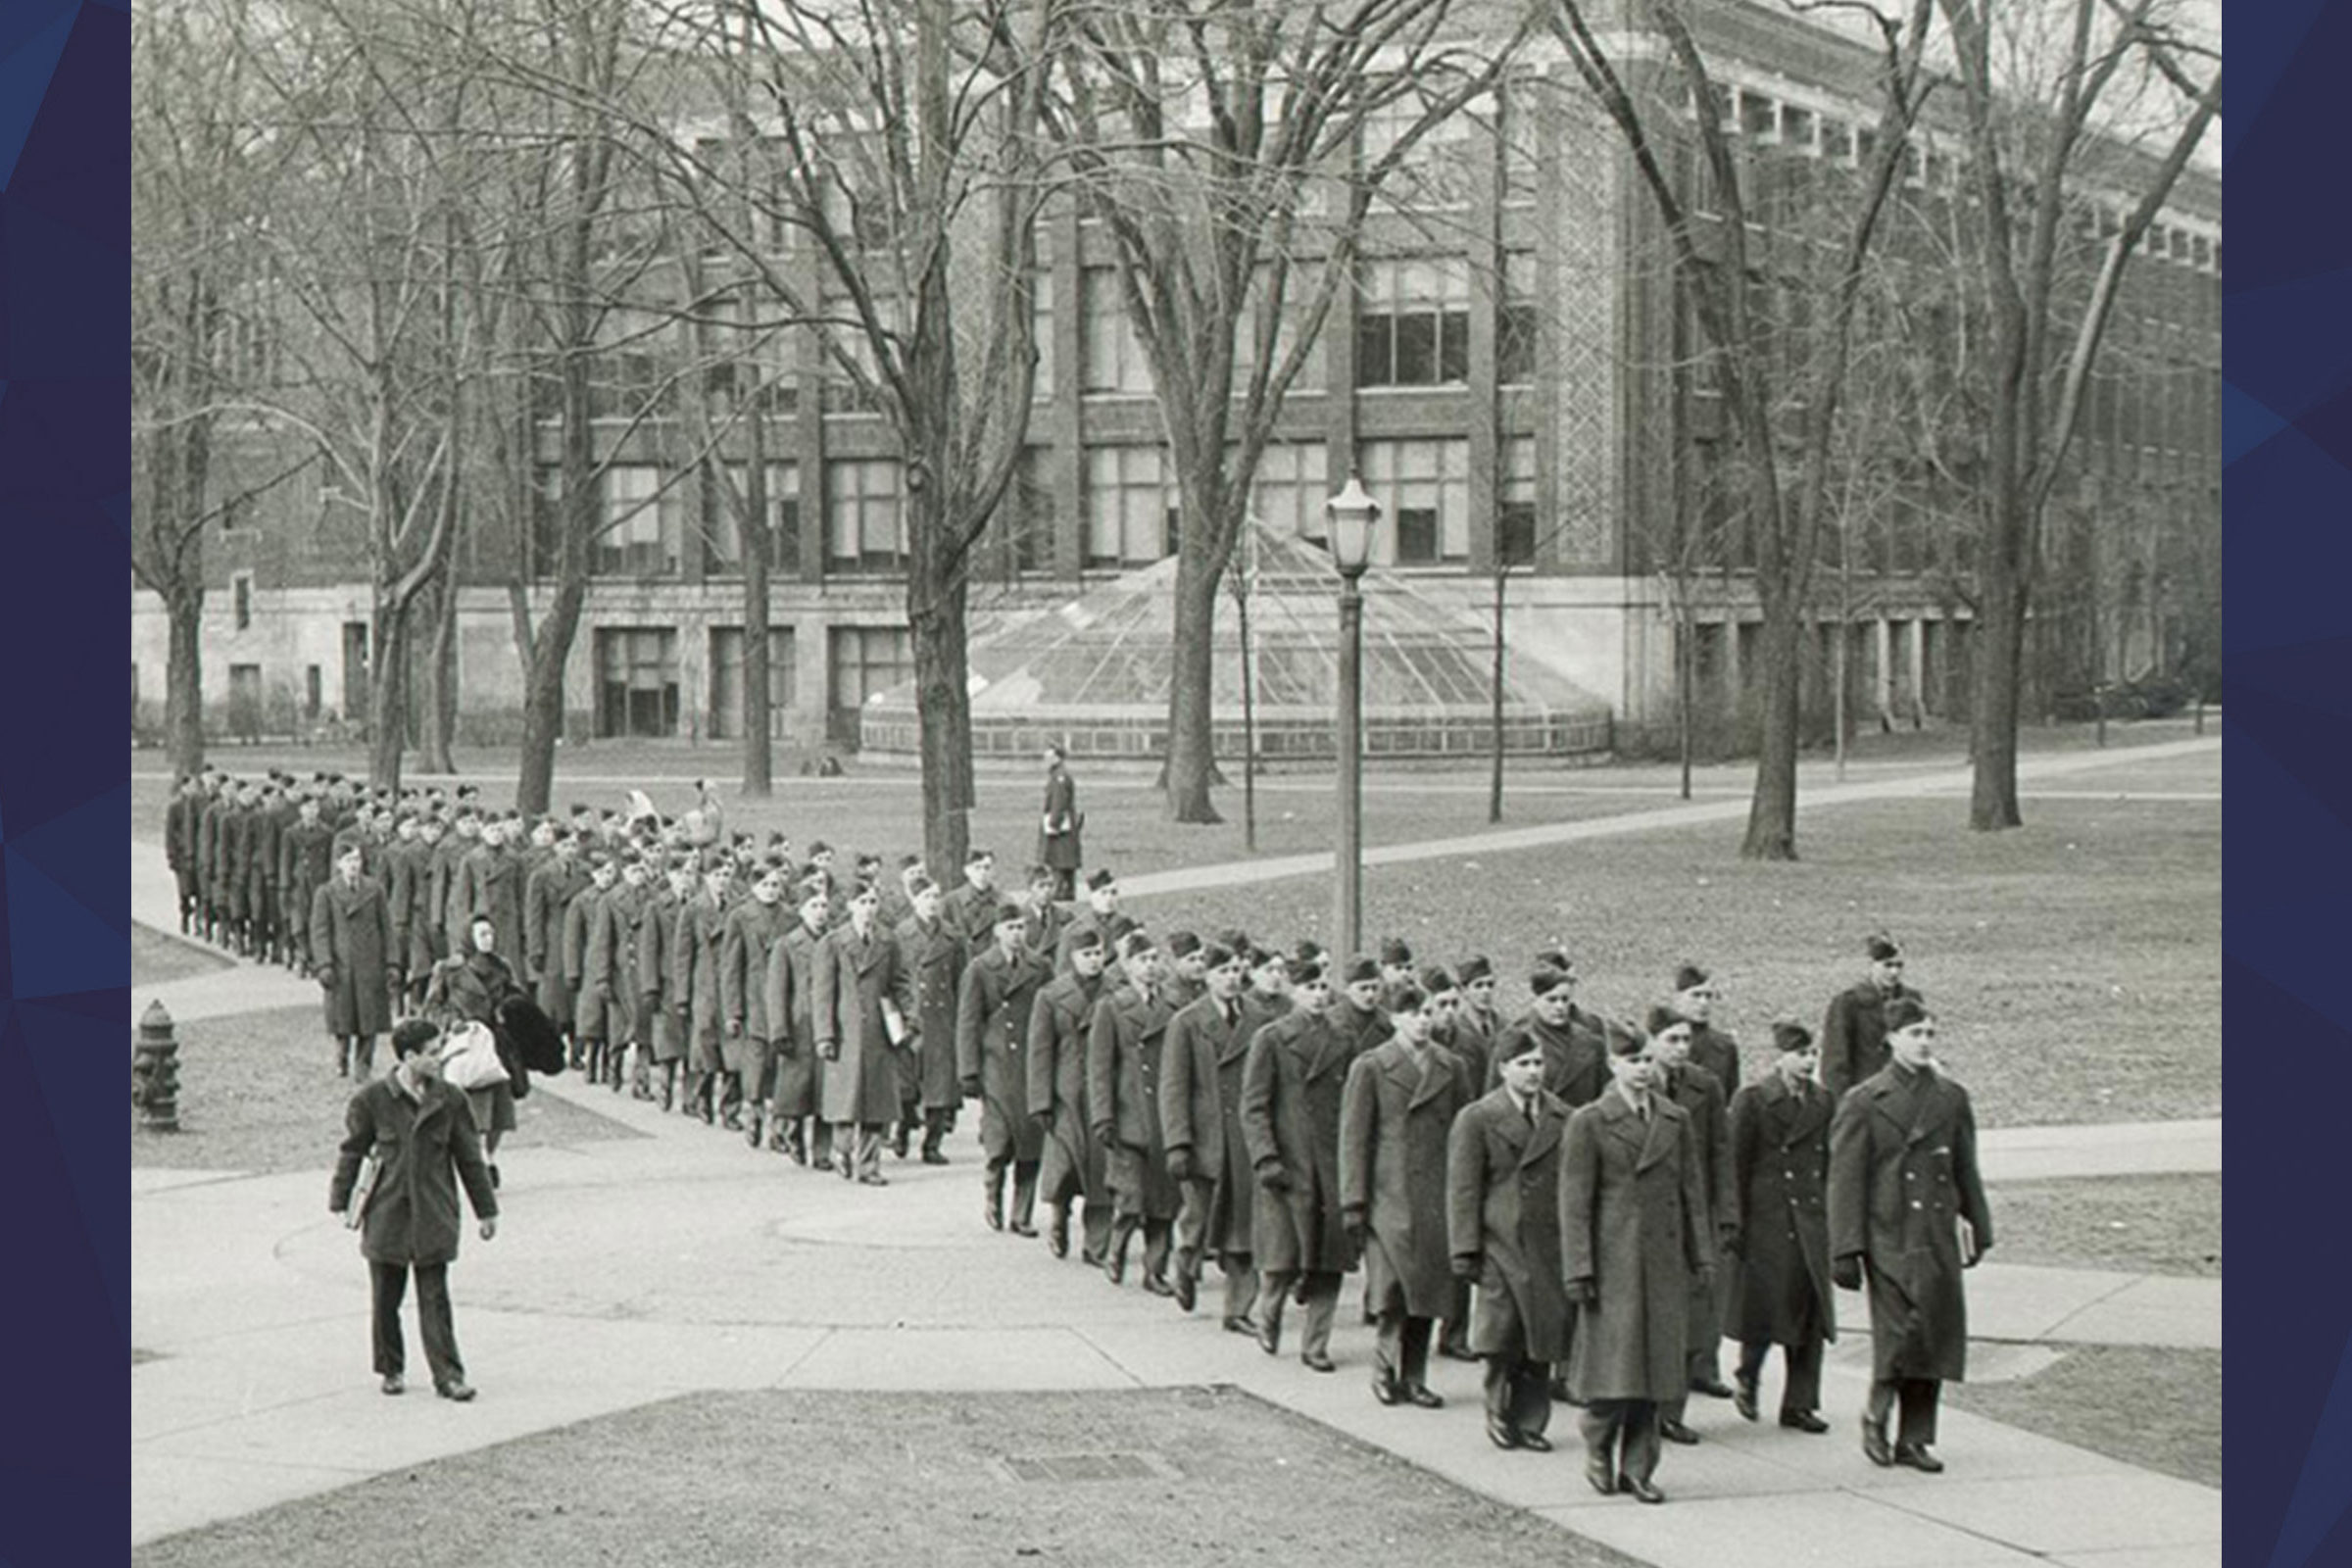 Soldiers lined up in the diag during World War II